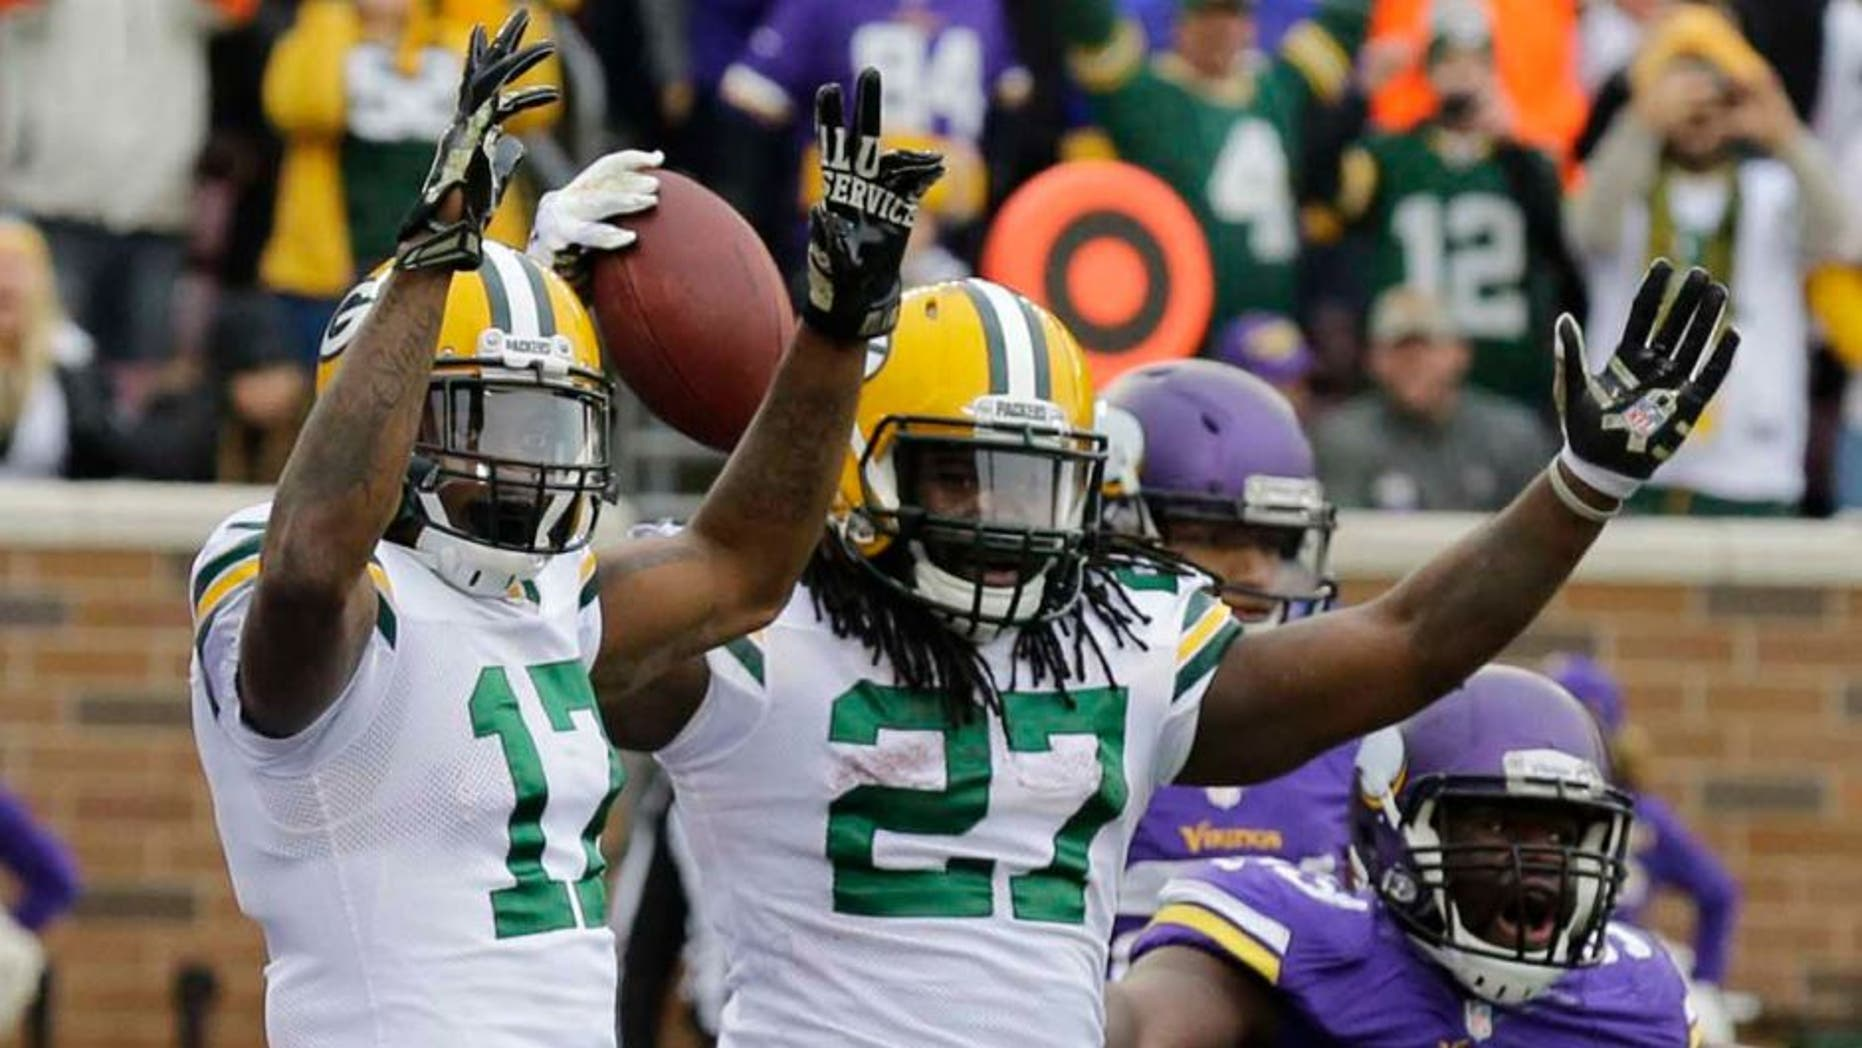 Sunday, November 23: Green Bay Packers running back Eddie Lacy (center) celebrates with teammate Davante Adams (left) after scoring on a 10-yard touchdown reception during the second half. Minnesota Vikings defensive tackle Shamar Stephen (right) disputes the call.